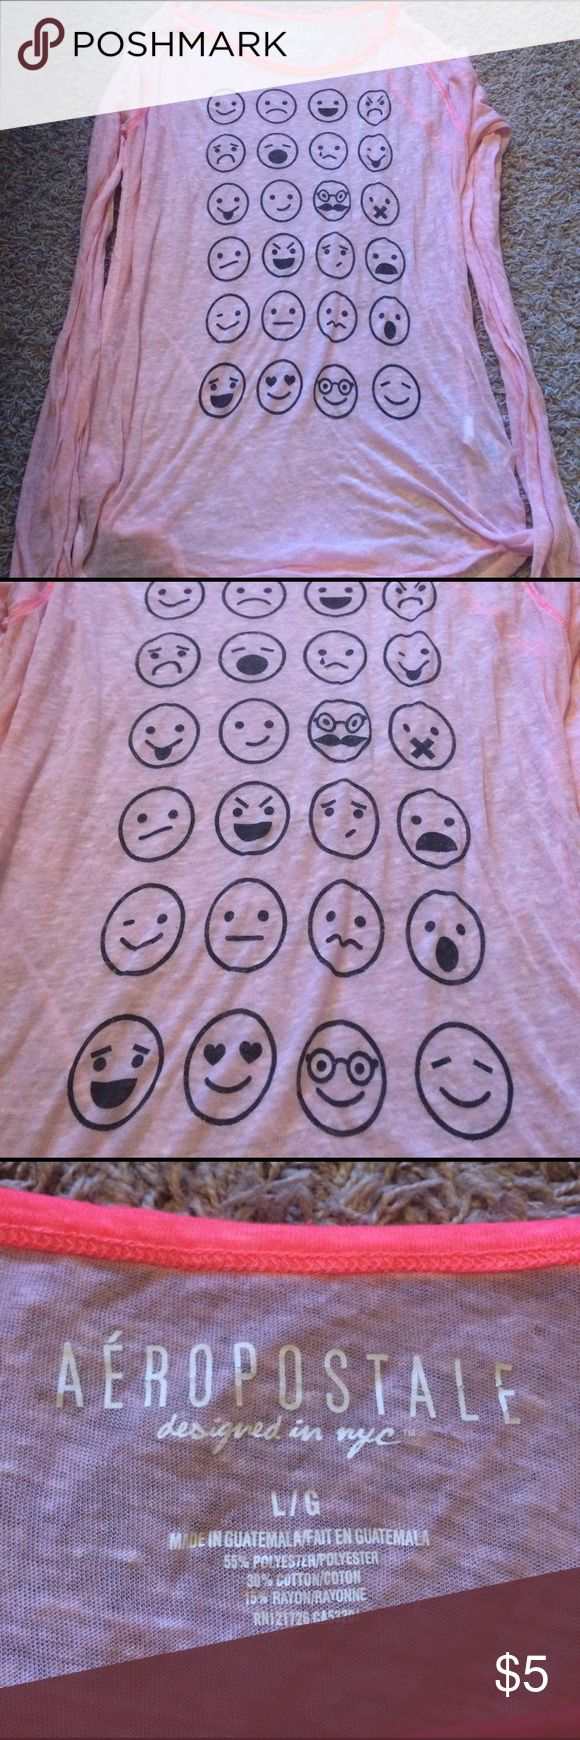 Pink transparent emoji top Light pink transparent long sleeve top with emojis on front. Made from 55% polyester, 30% cotton & 15% rayon. Unworn. Aeropostale Tops Blouses